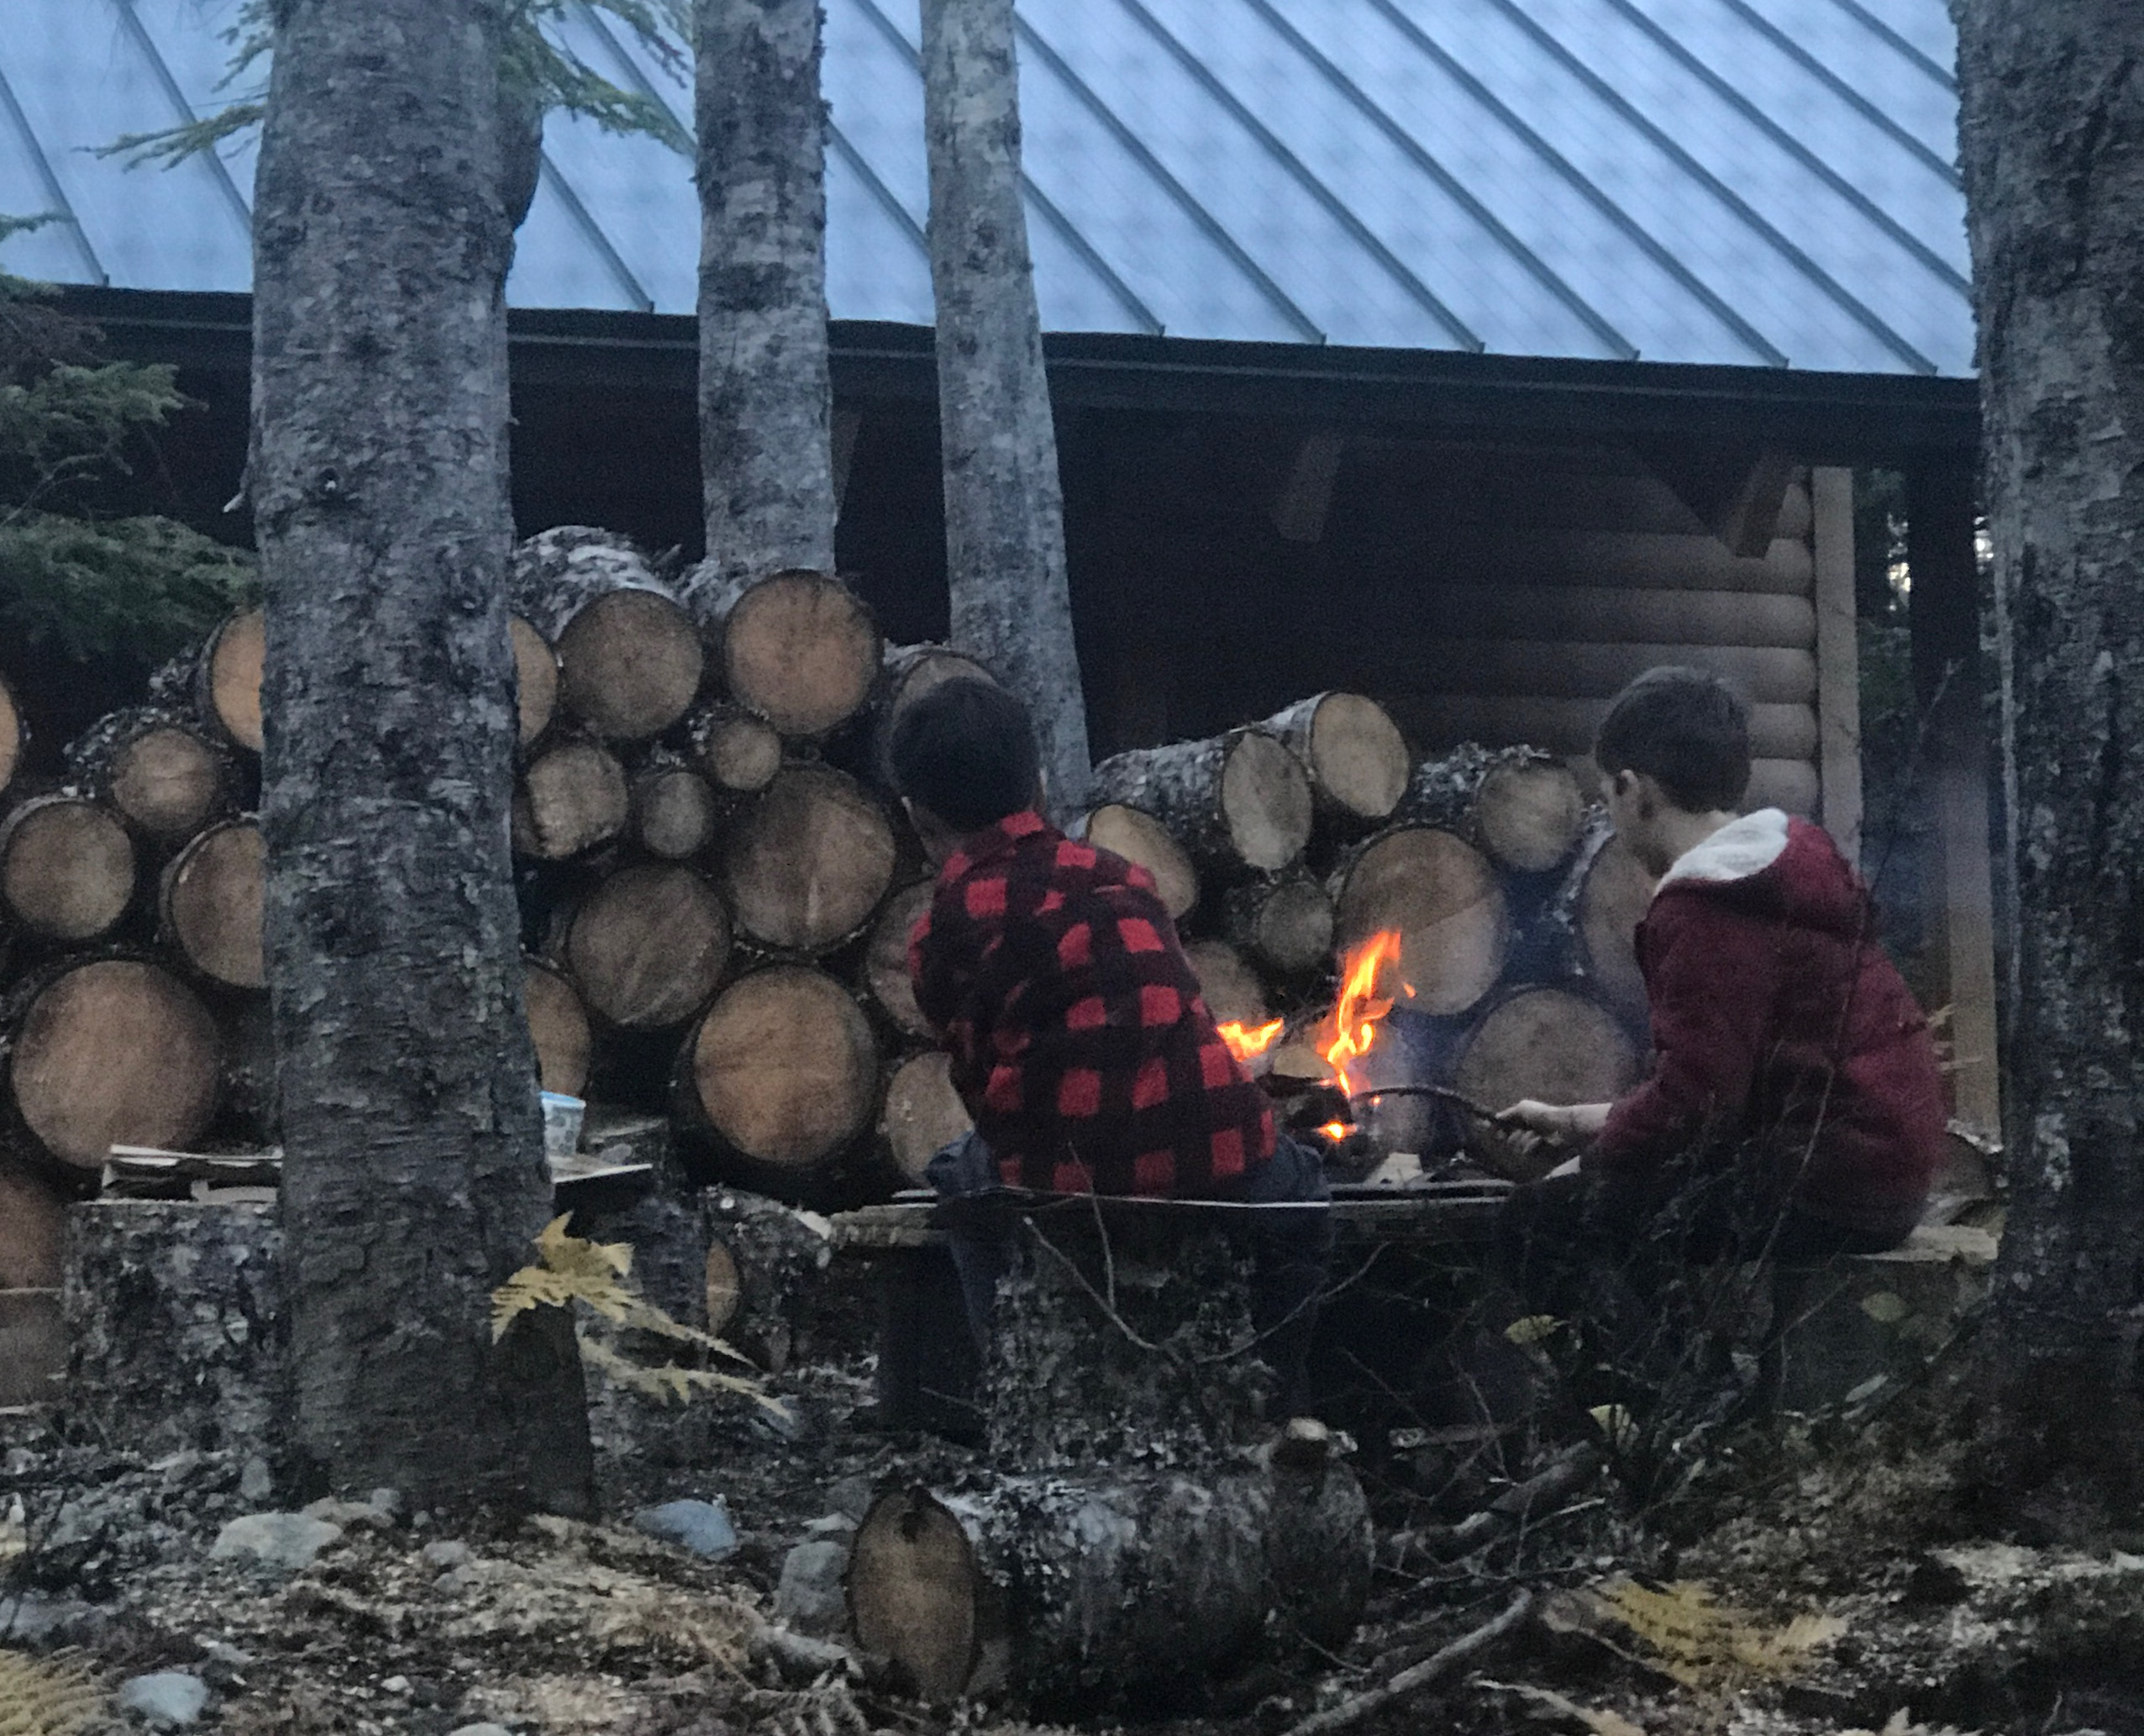 Cabin life in the mountain with kids